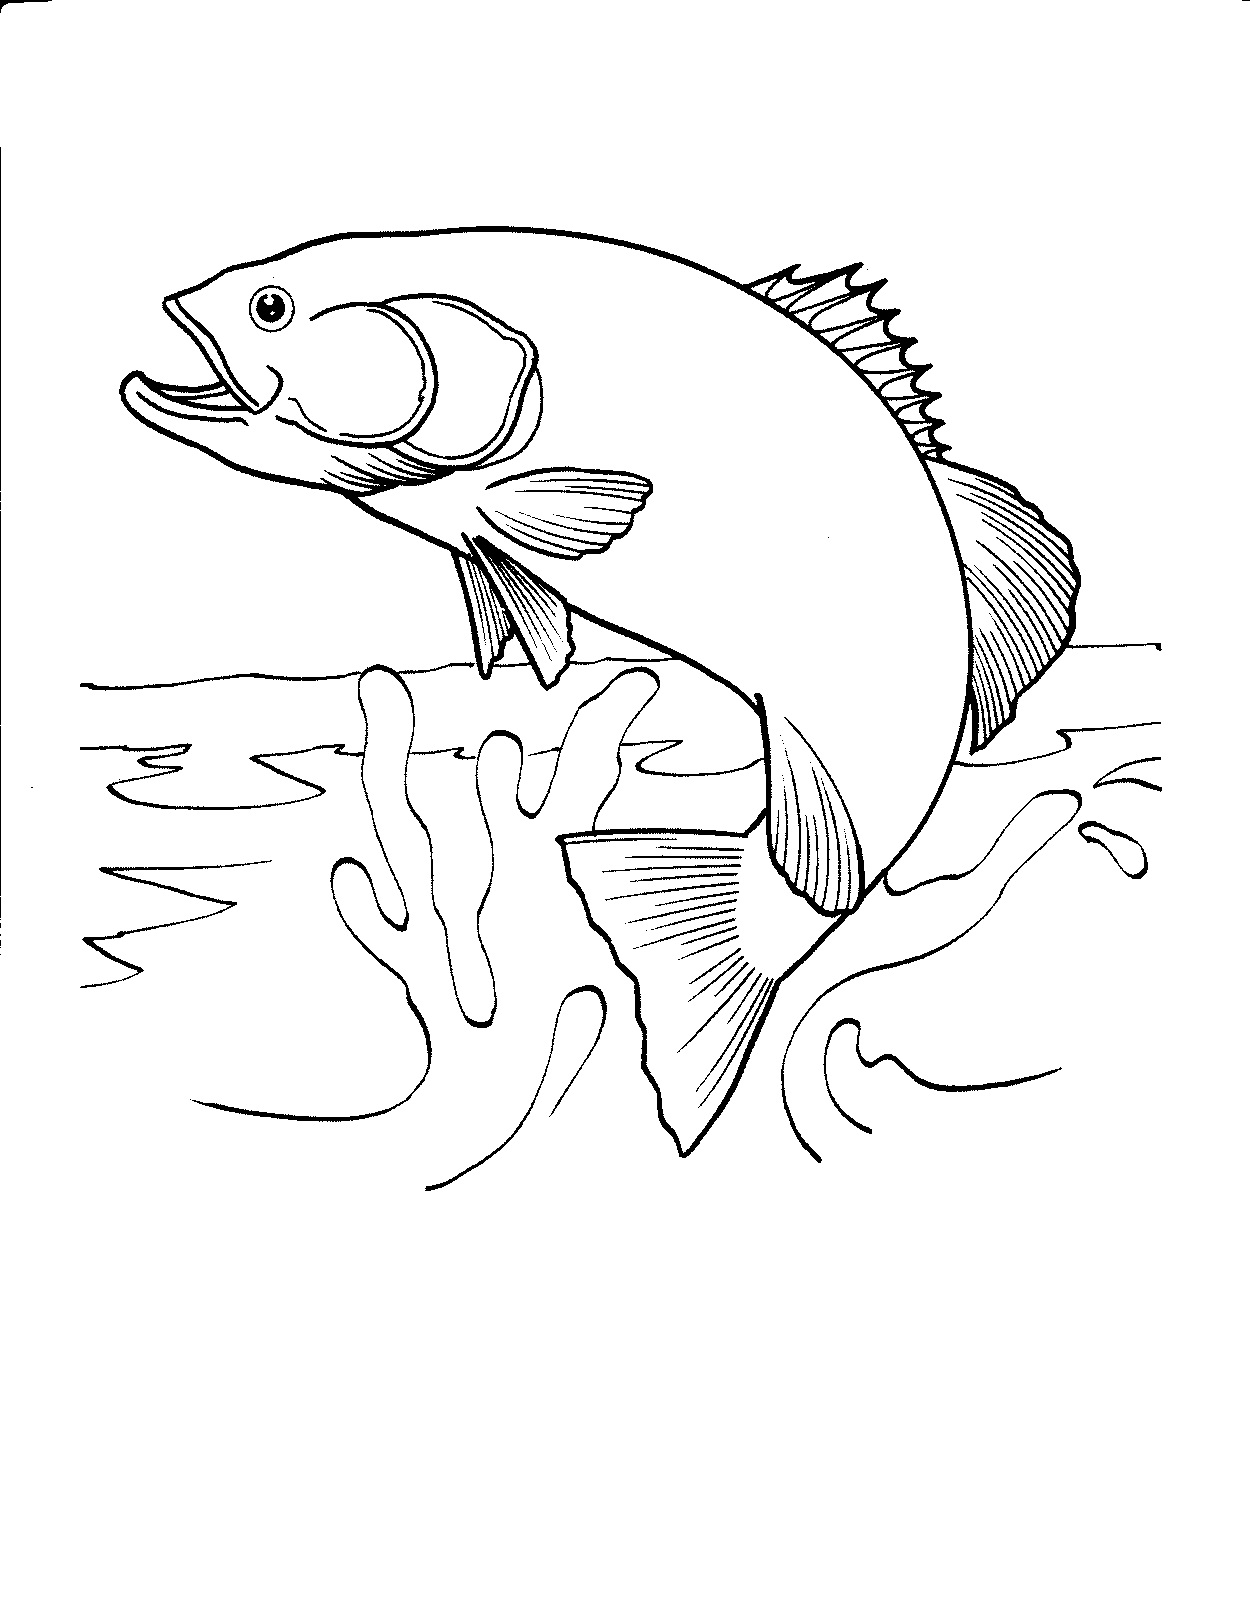 Free coloring pages fish - Realistic Fish Coloring Pages